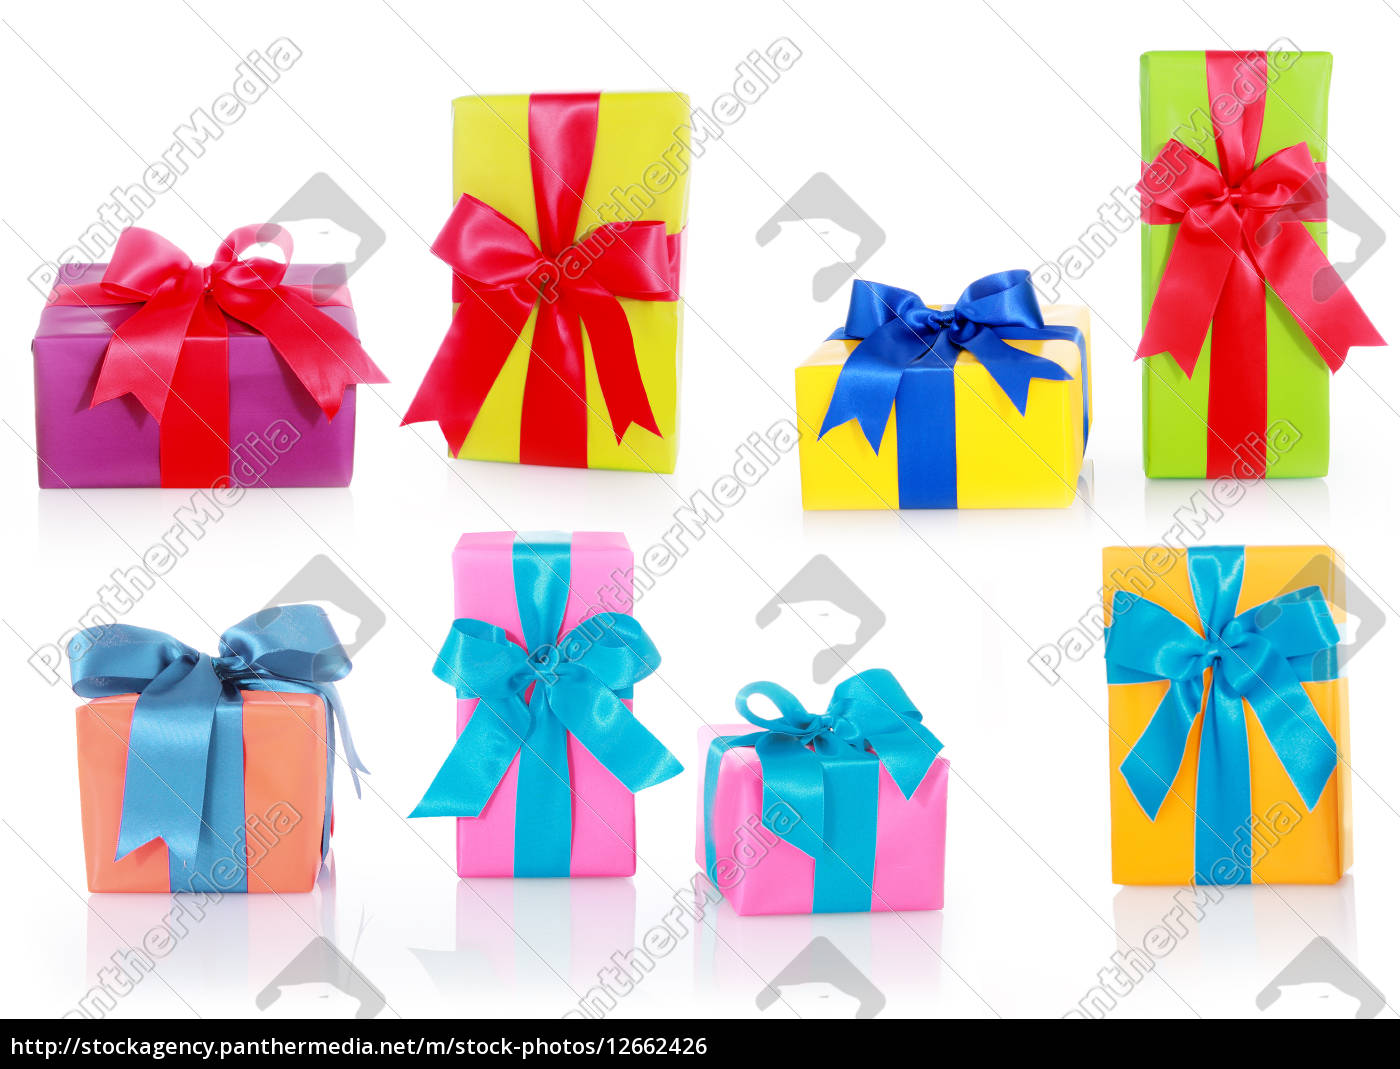 assorted, sizes, and, colors, gift, boxes - 12662426